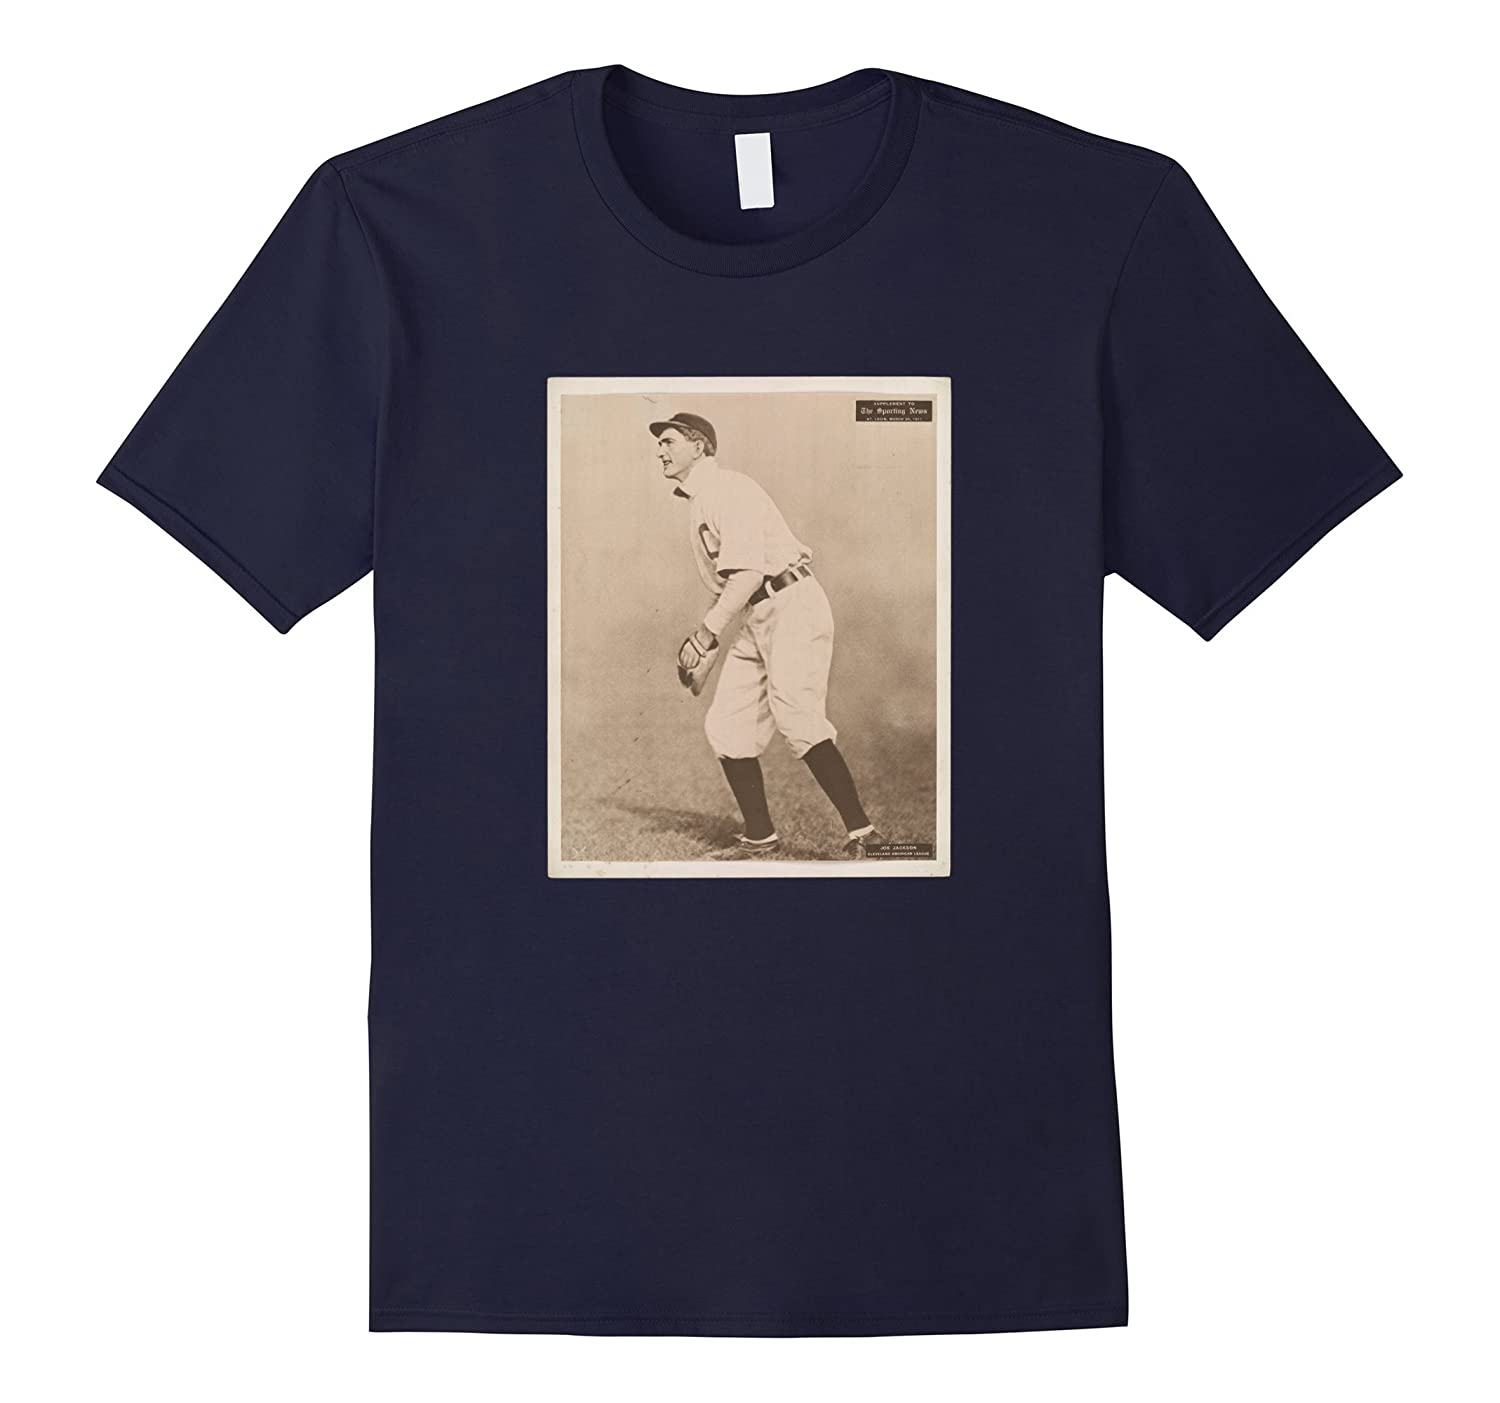 Baseball Player - Shoeless Joe Jackson, Cleveland-BN